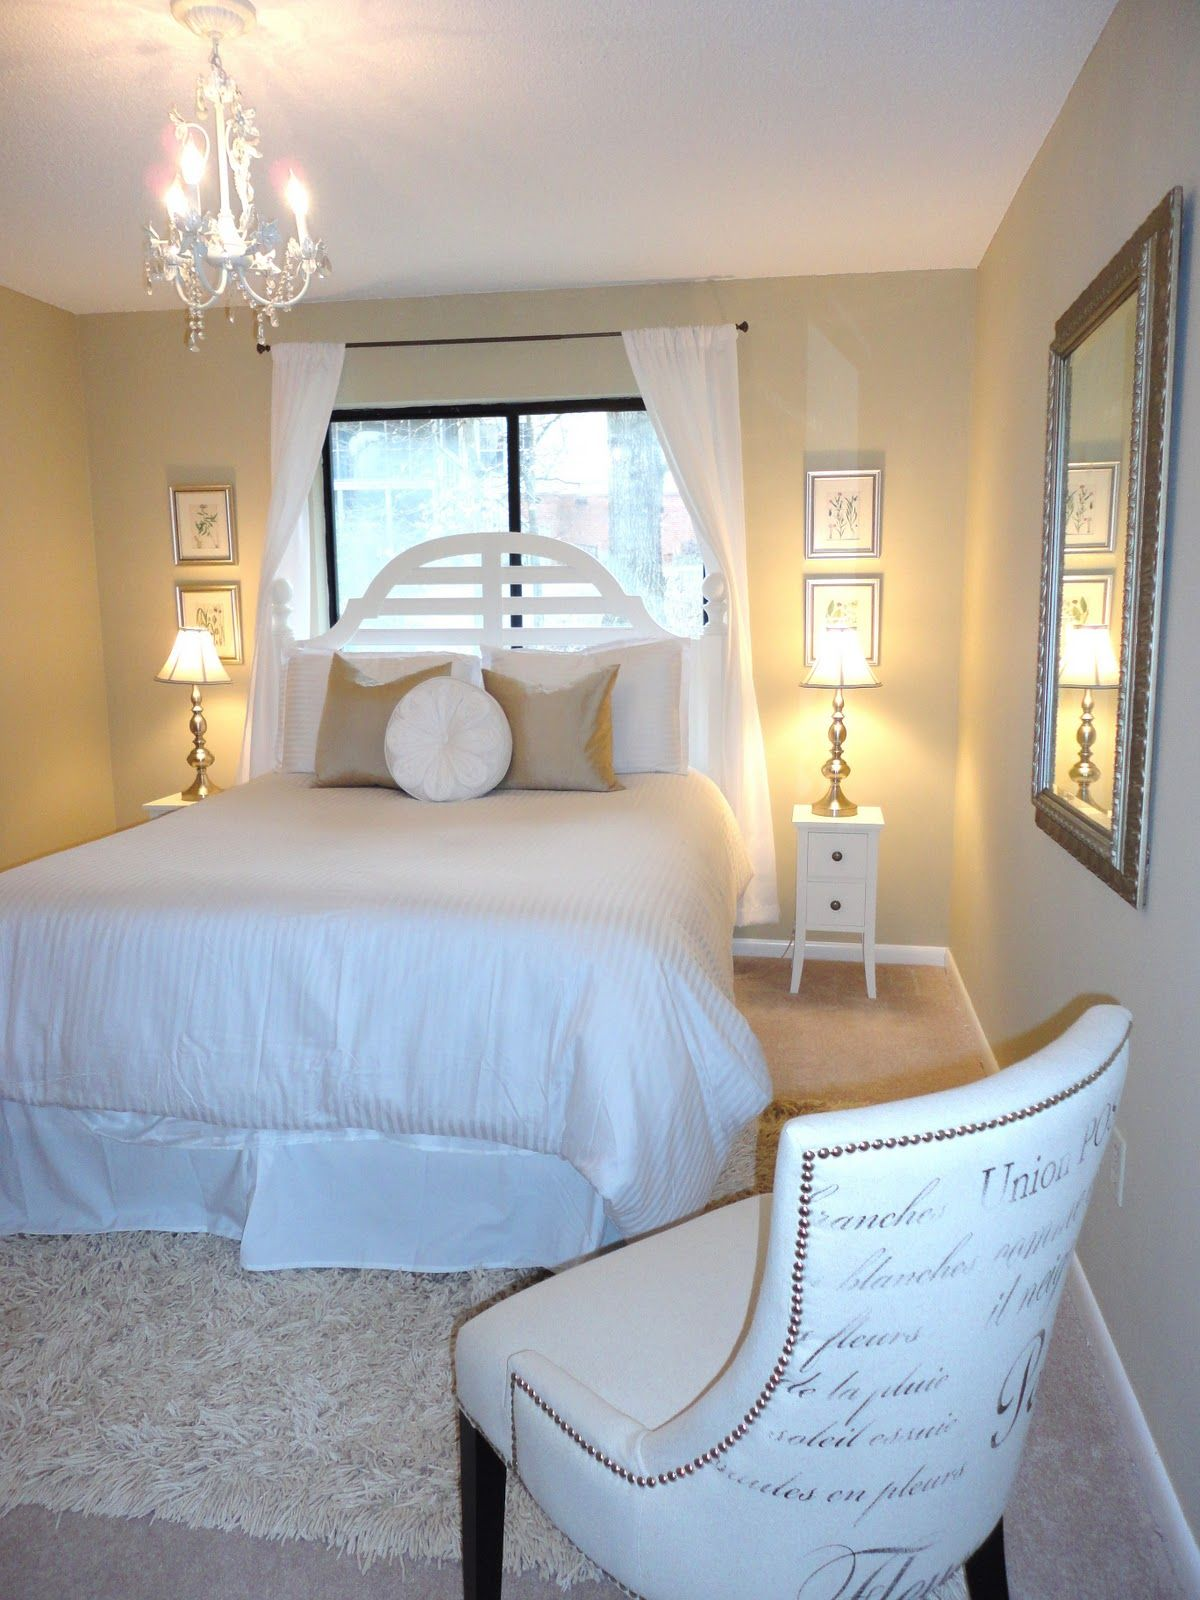 white guest bedroom ideas bedroom romantic white relaxing guest white guest bedroom ideas bedroom romantic white relaxing guest - Relaxing Bedroom Ideas For Decorating